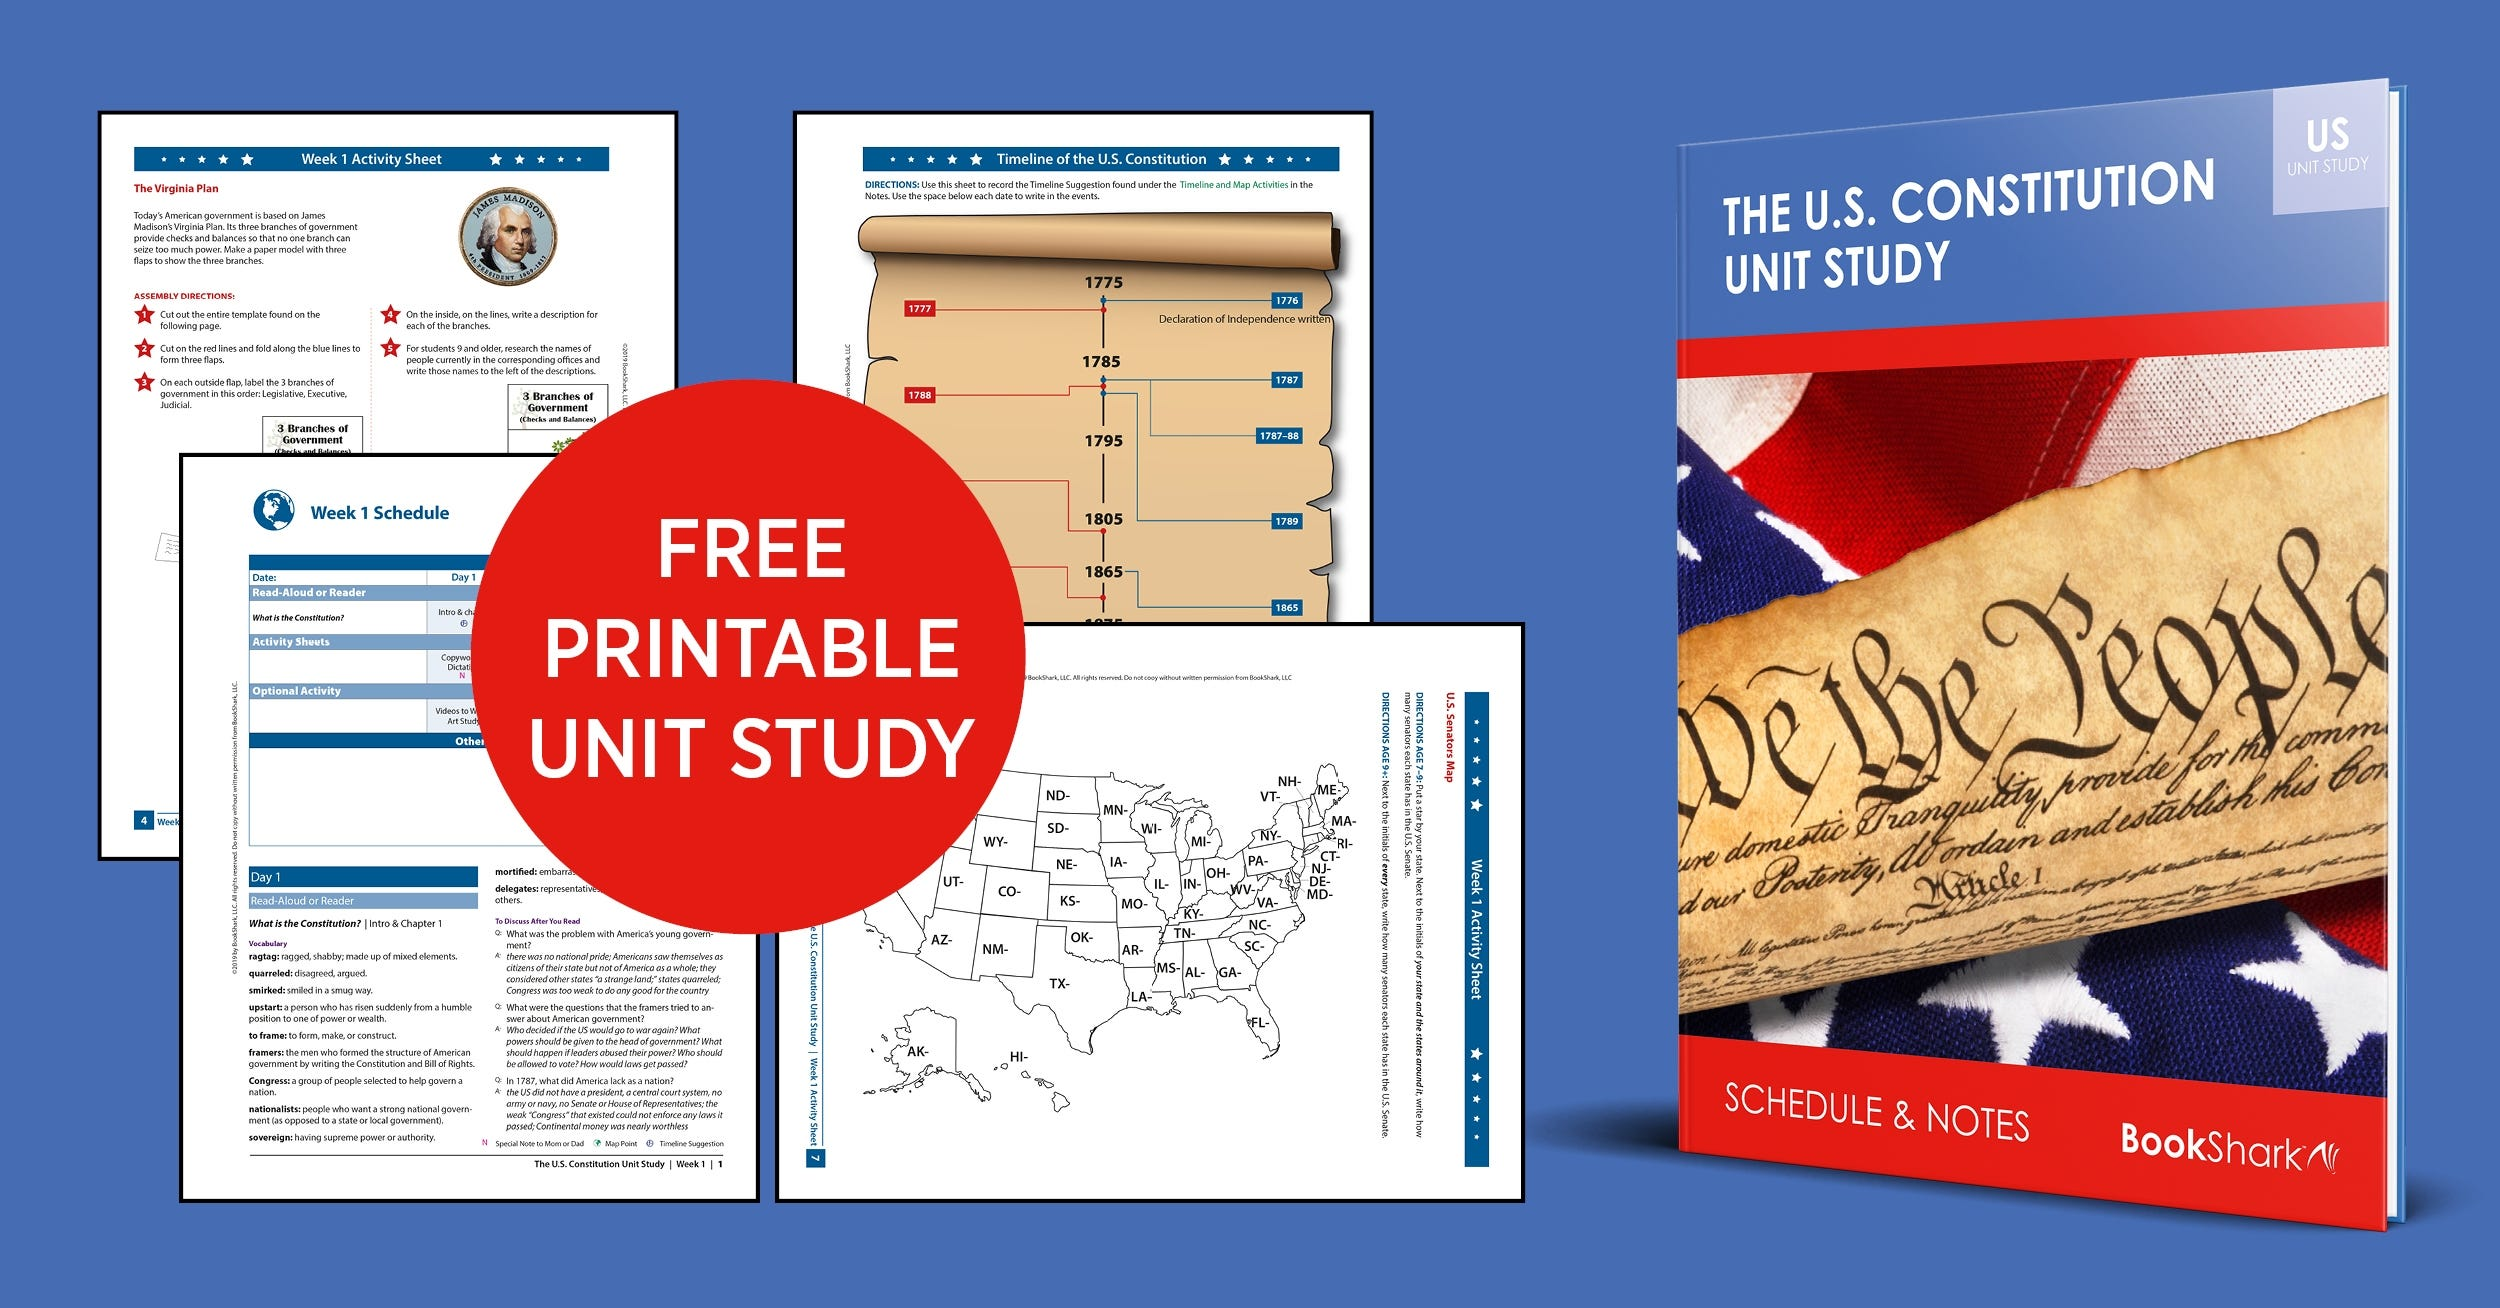 THE AMERICAN CONSTITUTION UNIT STUDY